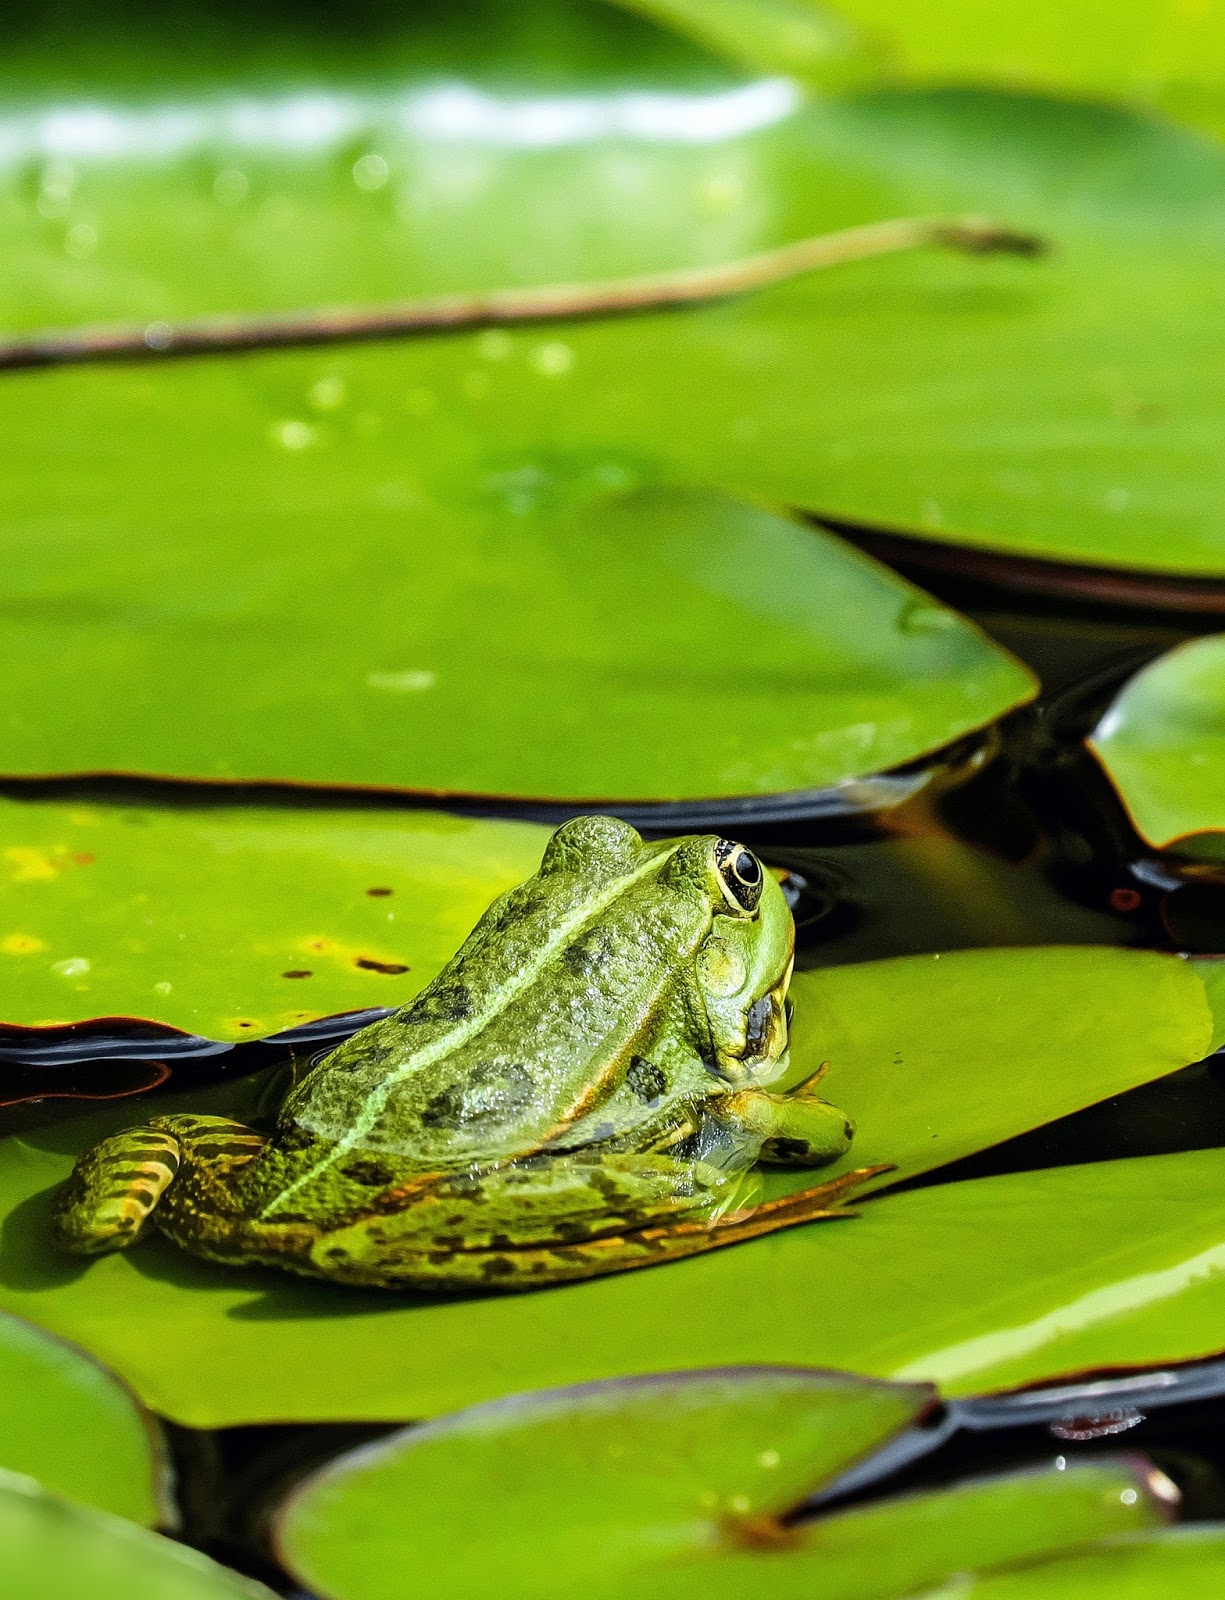 A photo of a green frog.